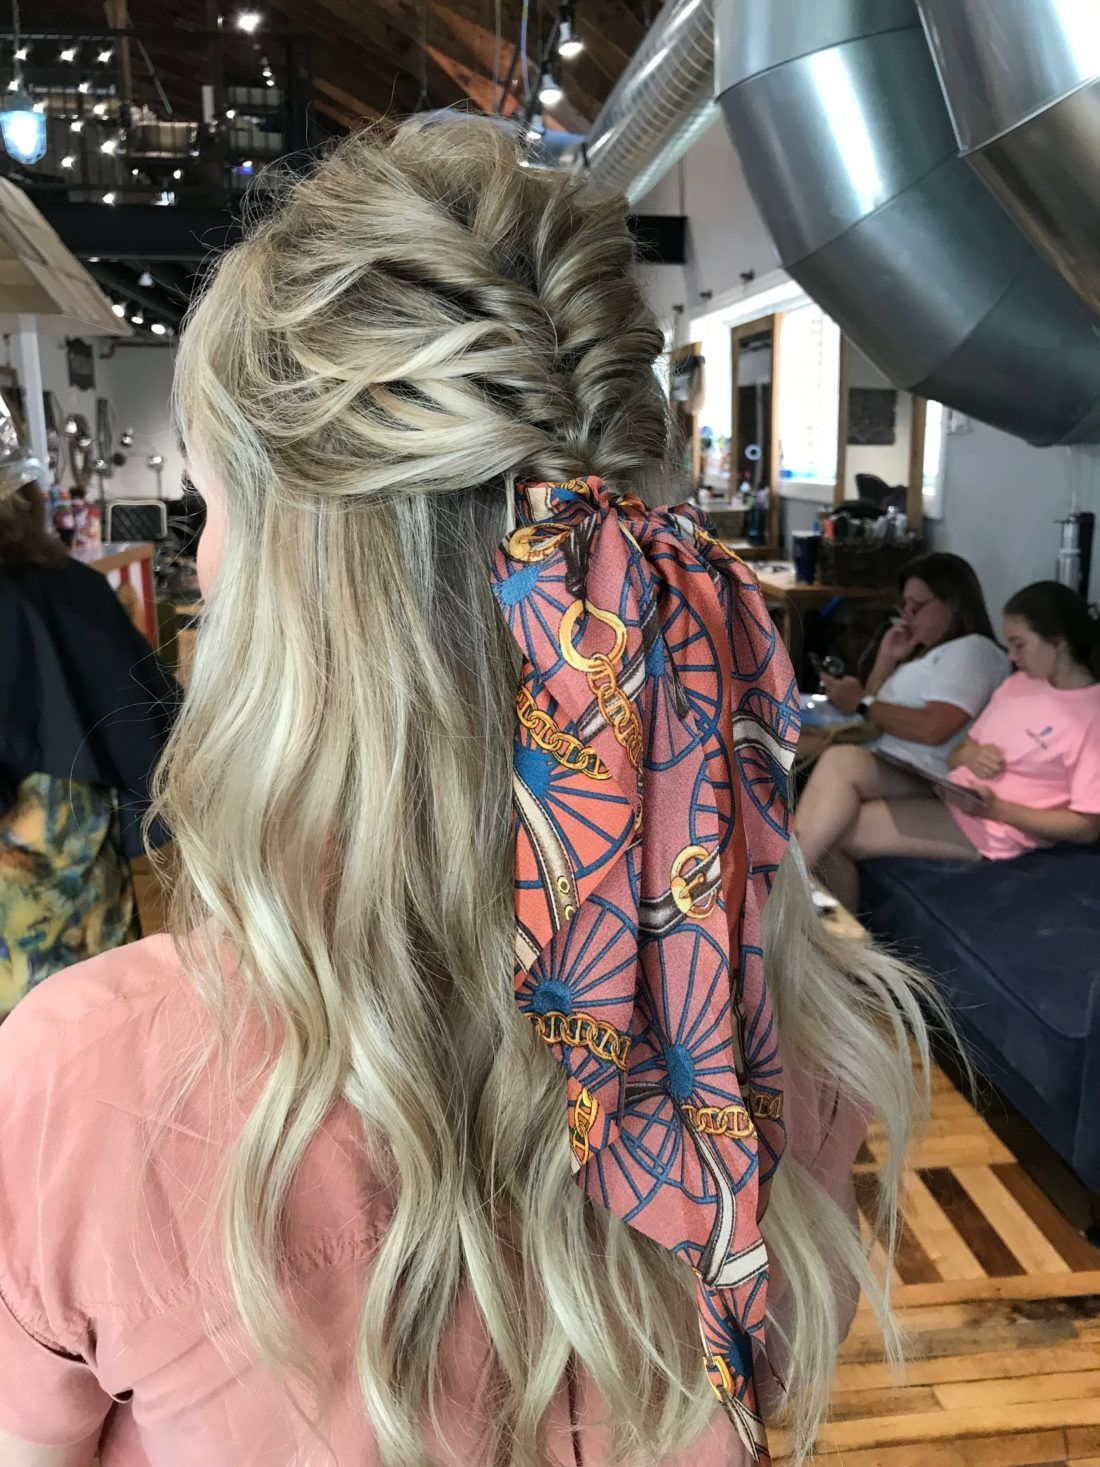 Cute Easy Hairstyle For Any Hair Length A Cup Full Of Sass In 2020 Hair Lengths Easy Hairstyles Hair Styles